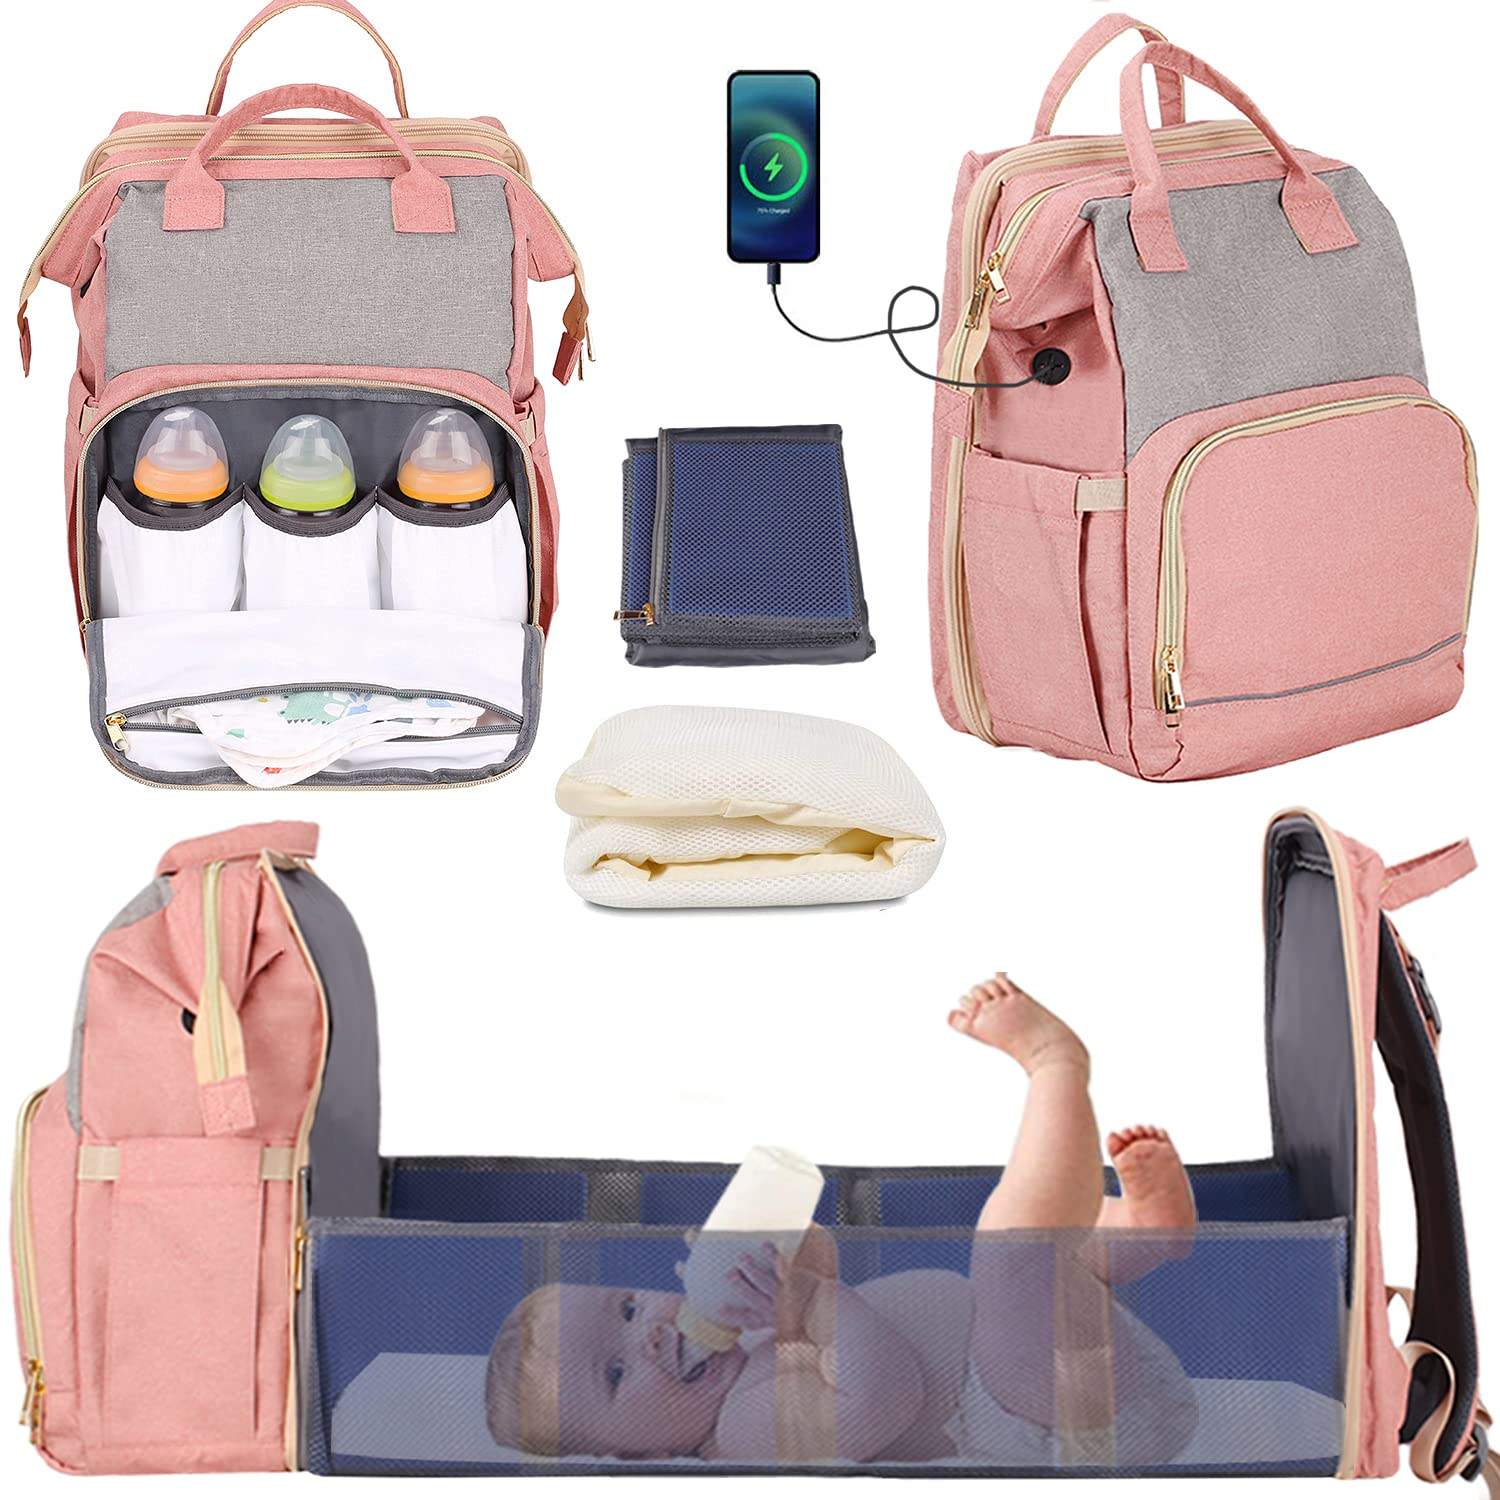 Manrany 3 in 1 Diaper Bag Backpack with Changing Station, Travel Bassinet Foldable Baby Bed, Portable Crib, Mummy Bag, Large Capacity, Waterproof, Multi-Functional Baby Travel Bag Pink (Pink-New)